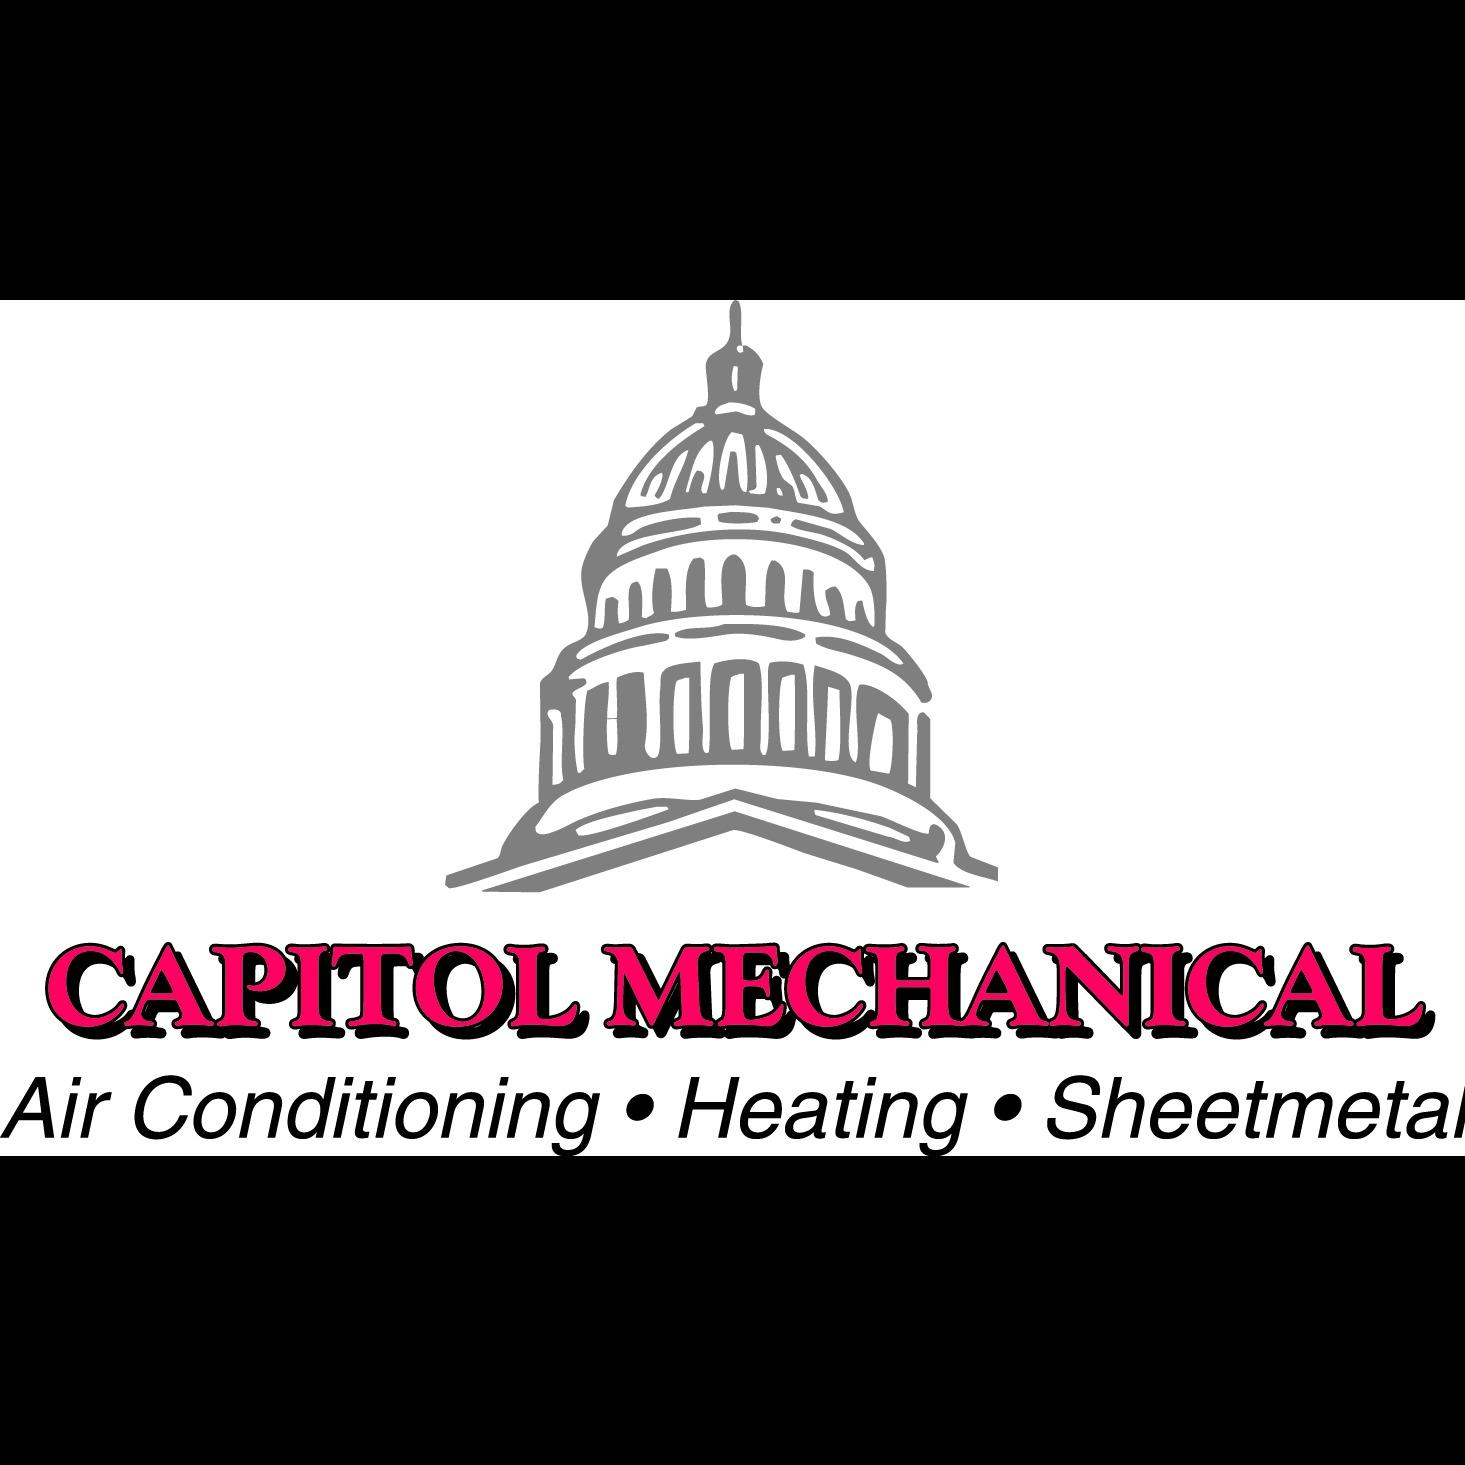 Capitol Mechanical - Citrus Heights, CA - Heating & Air Conditioning